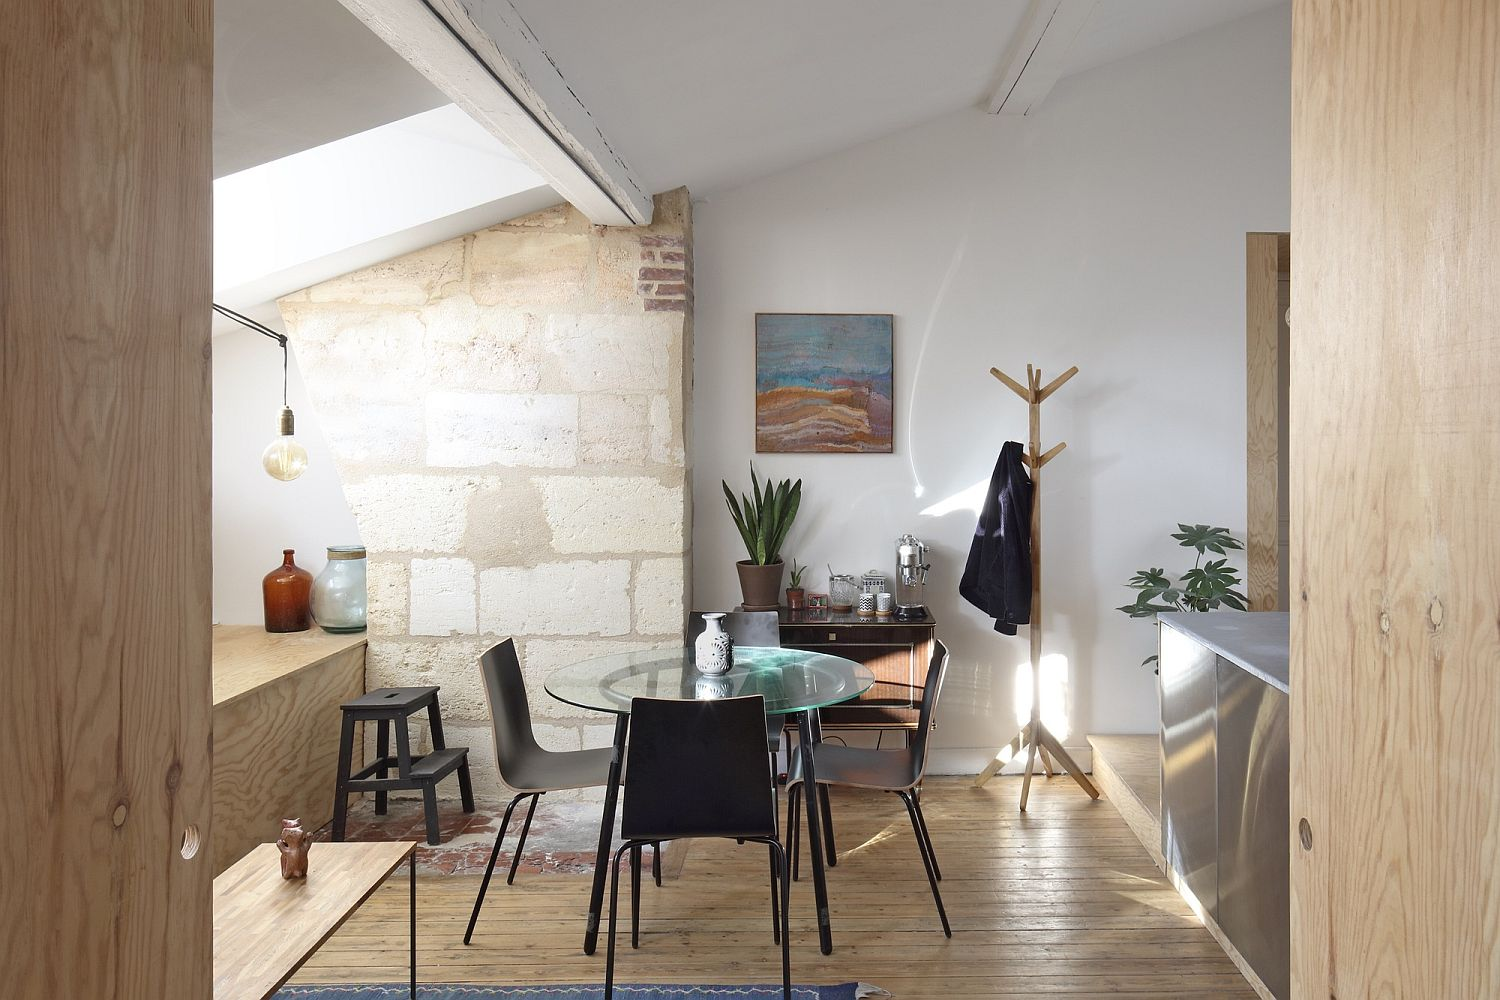 Different textures and finsihes combined in a smart manner inside the tiny French apartment